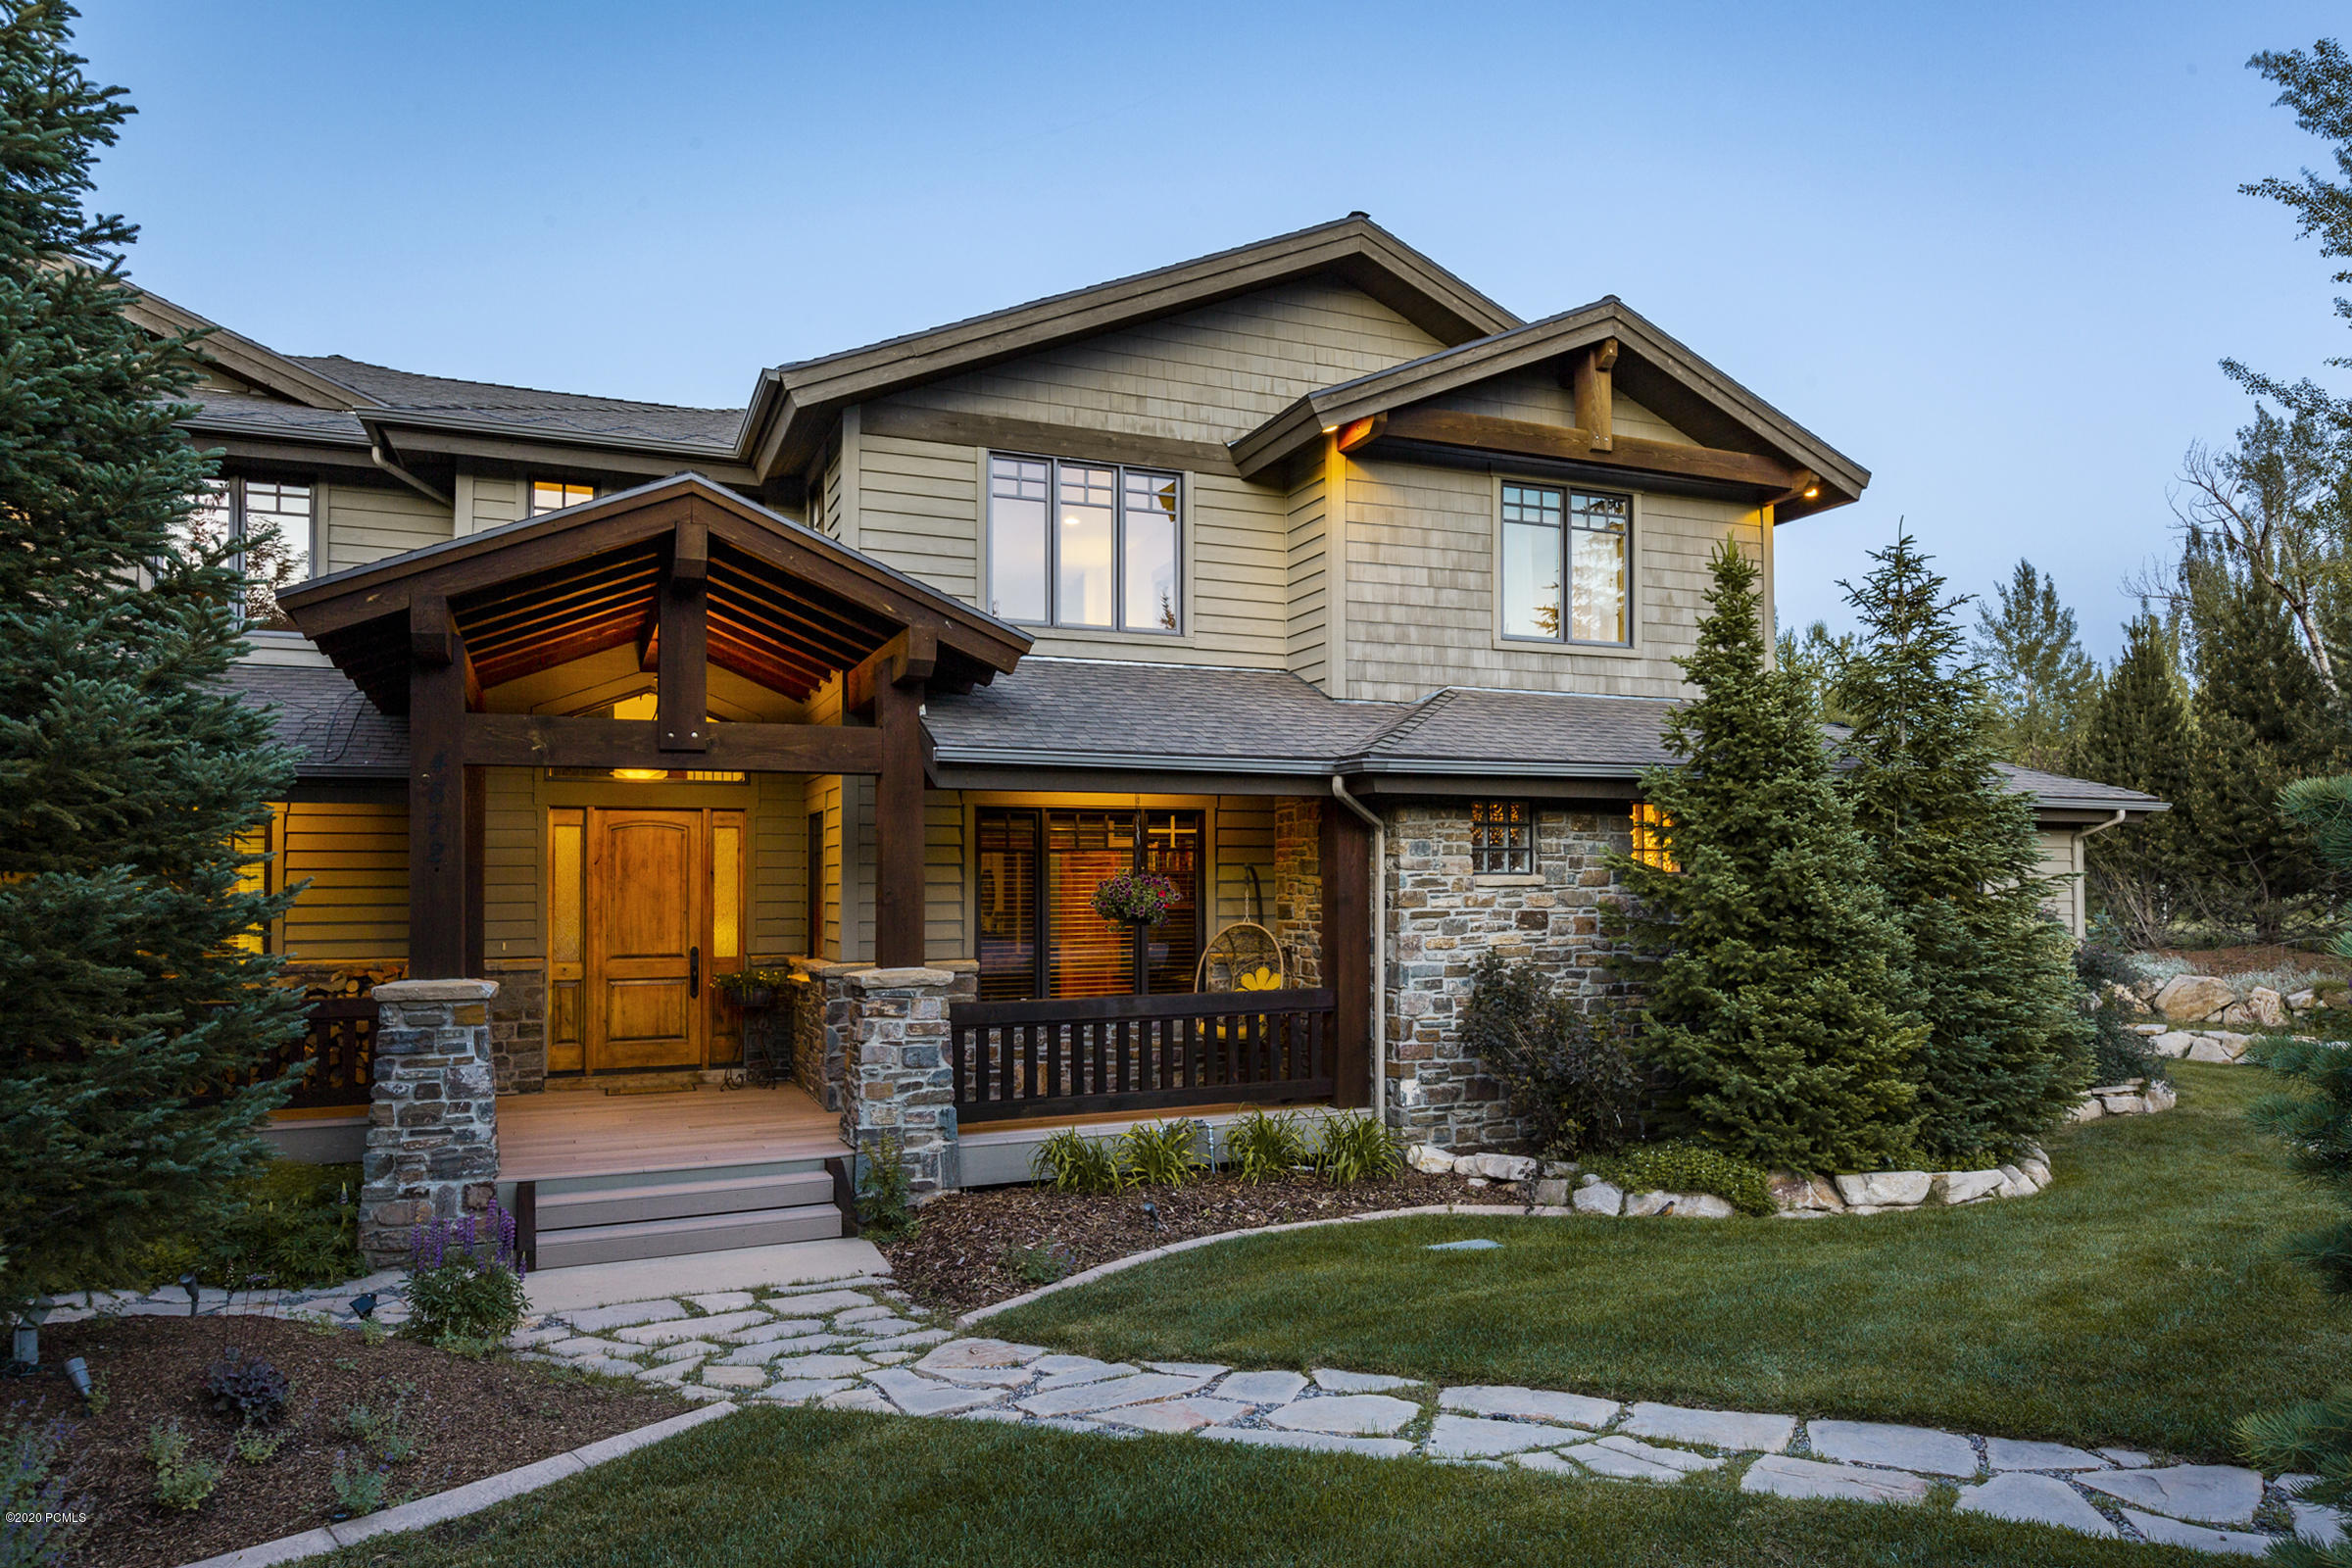 4872 Last Stand Drive, Park City, Utah 84098, 4 Bedrooms Bedrooms, ,7 BathroomsBathrooms,Single Family,For Sale,Last Stand,20190109112430415765000000